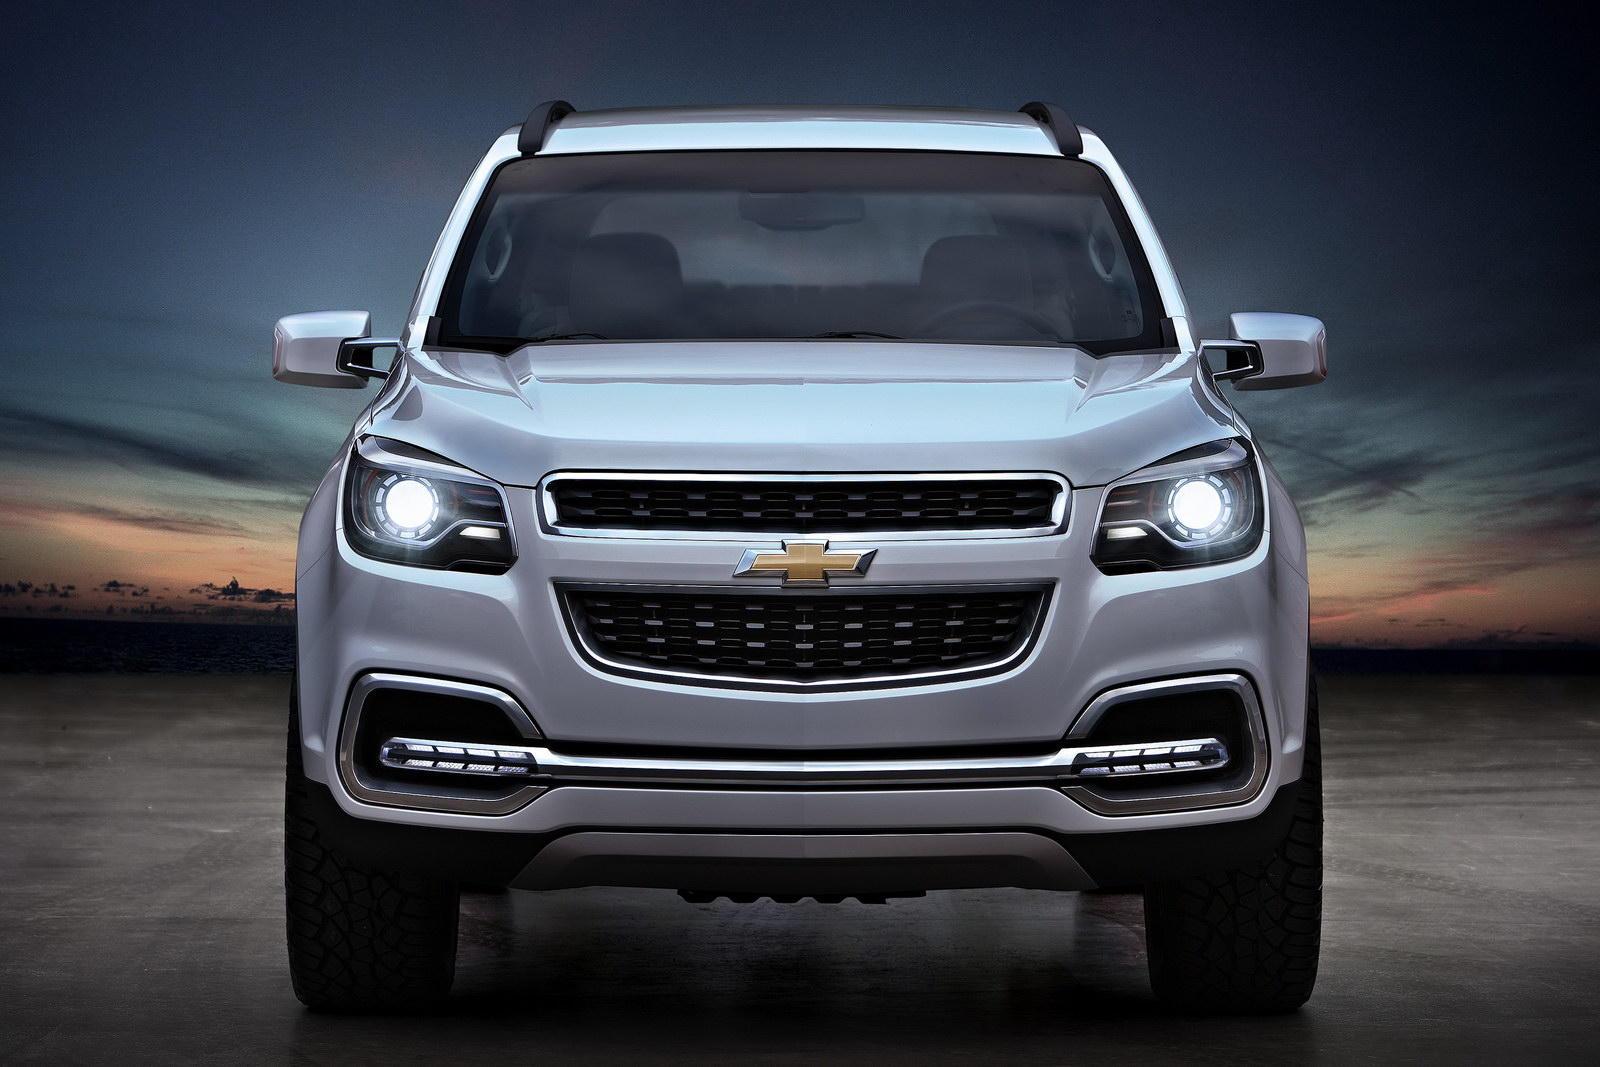 2013 Chevrolet Trailblazer Gets Real With New Photos and Videos